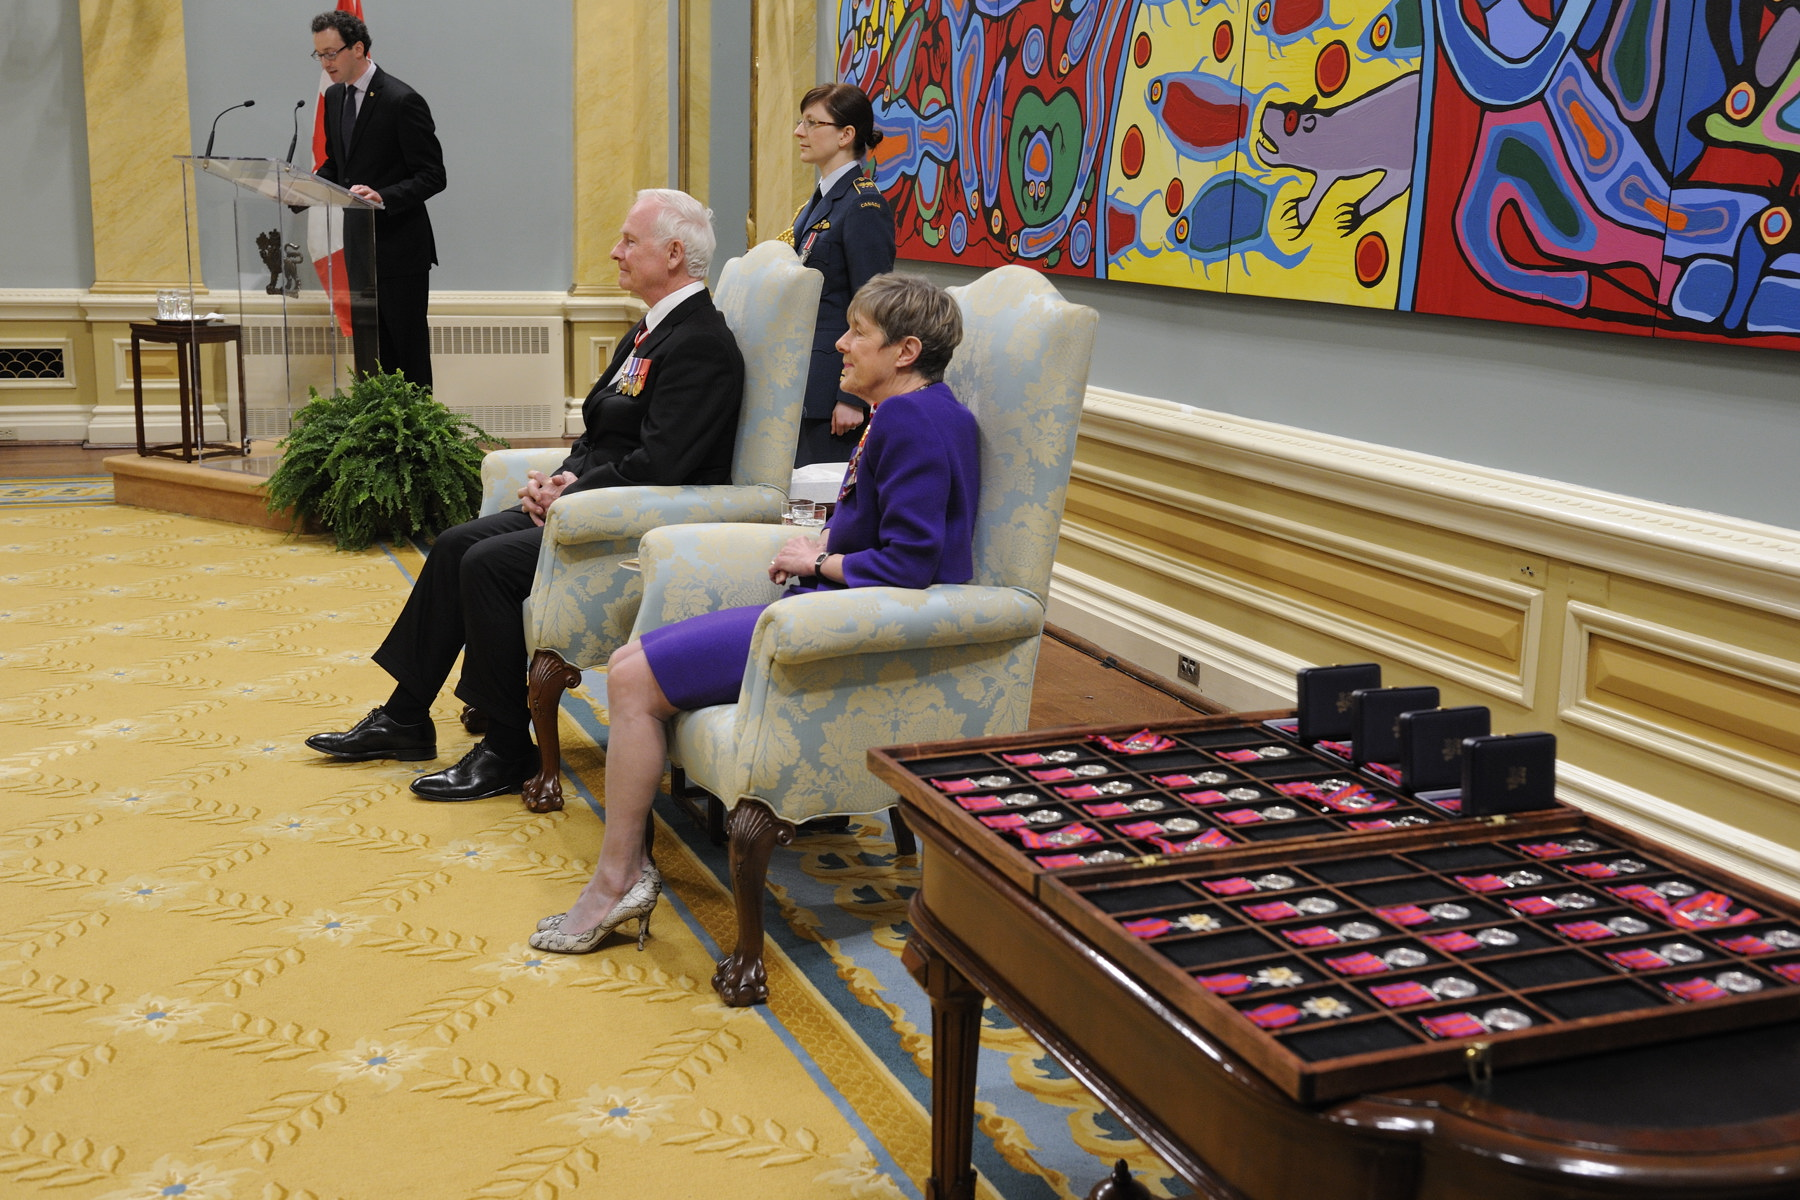 On February 24, 2012, the Right Honourable David Johnston, Governor General of Canada, presented 46 Decorations for Bravery, during a presentation ceremony at Rideau Hall.